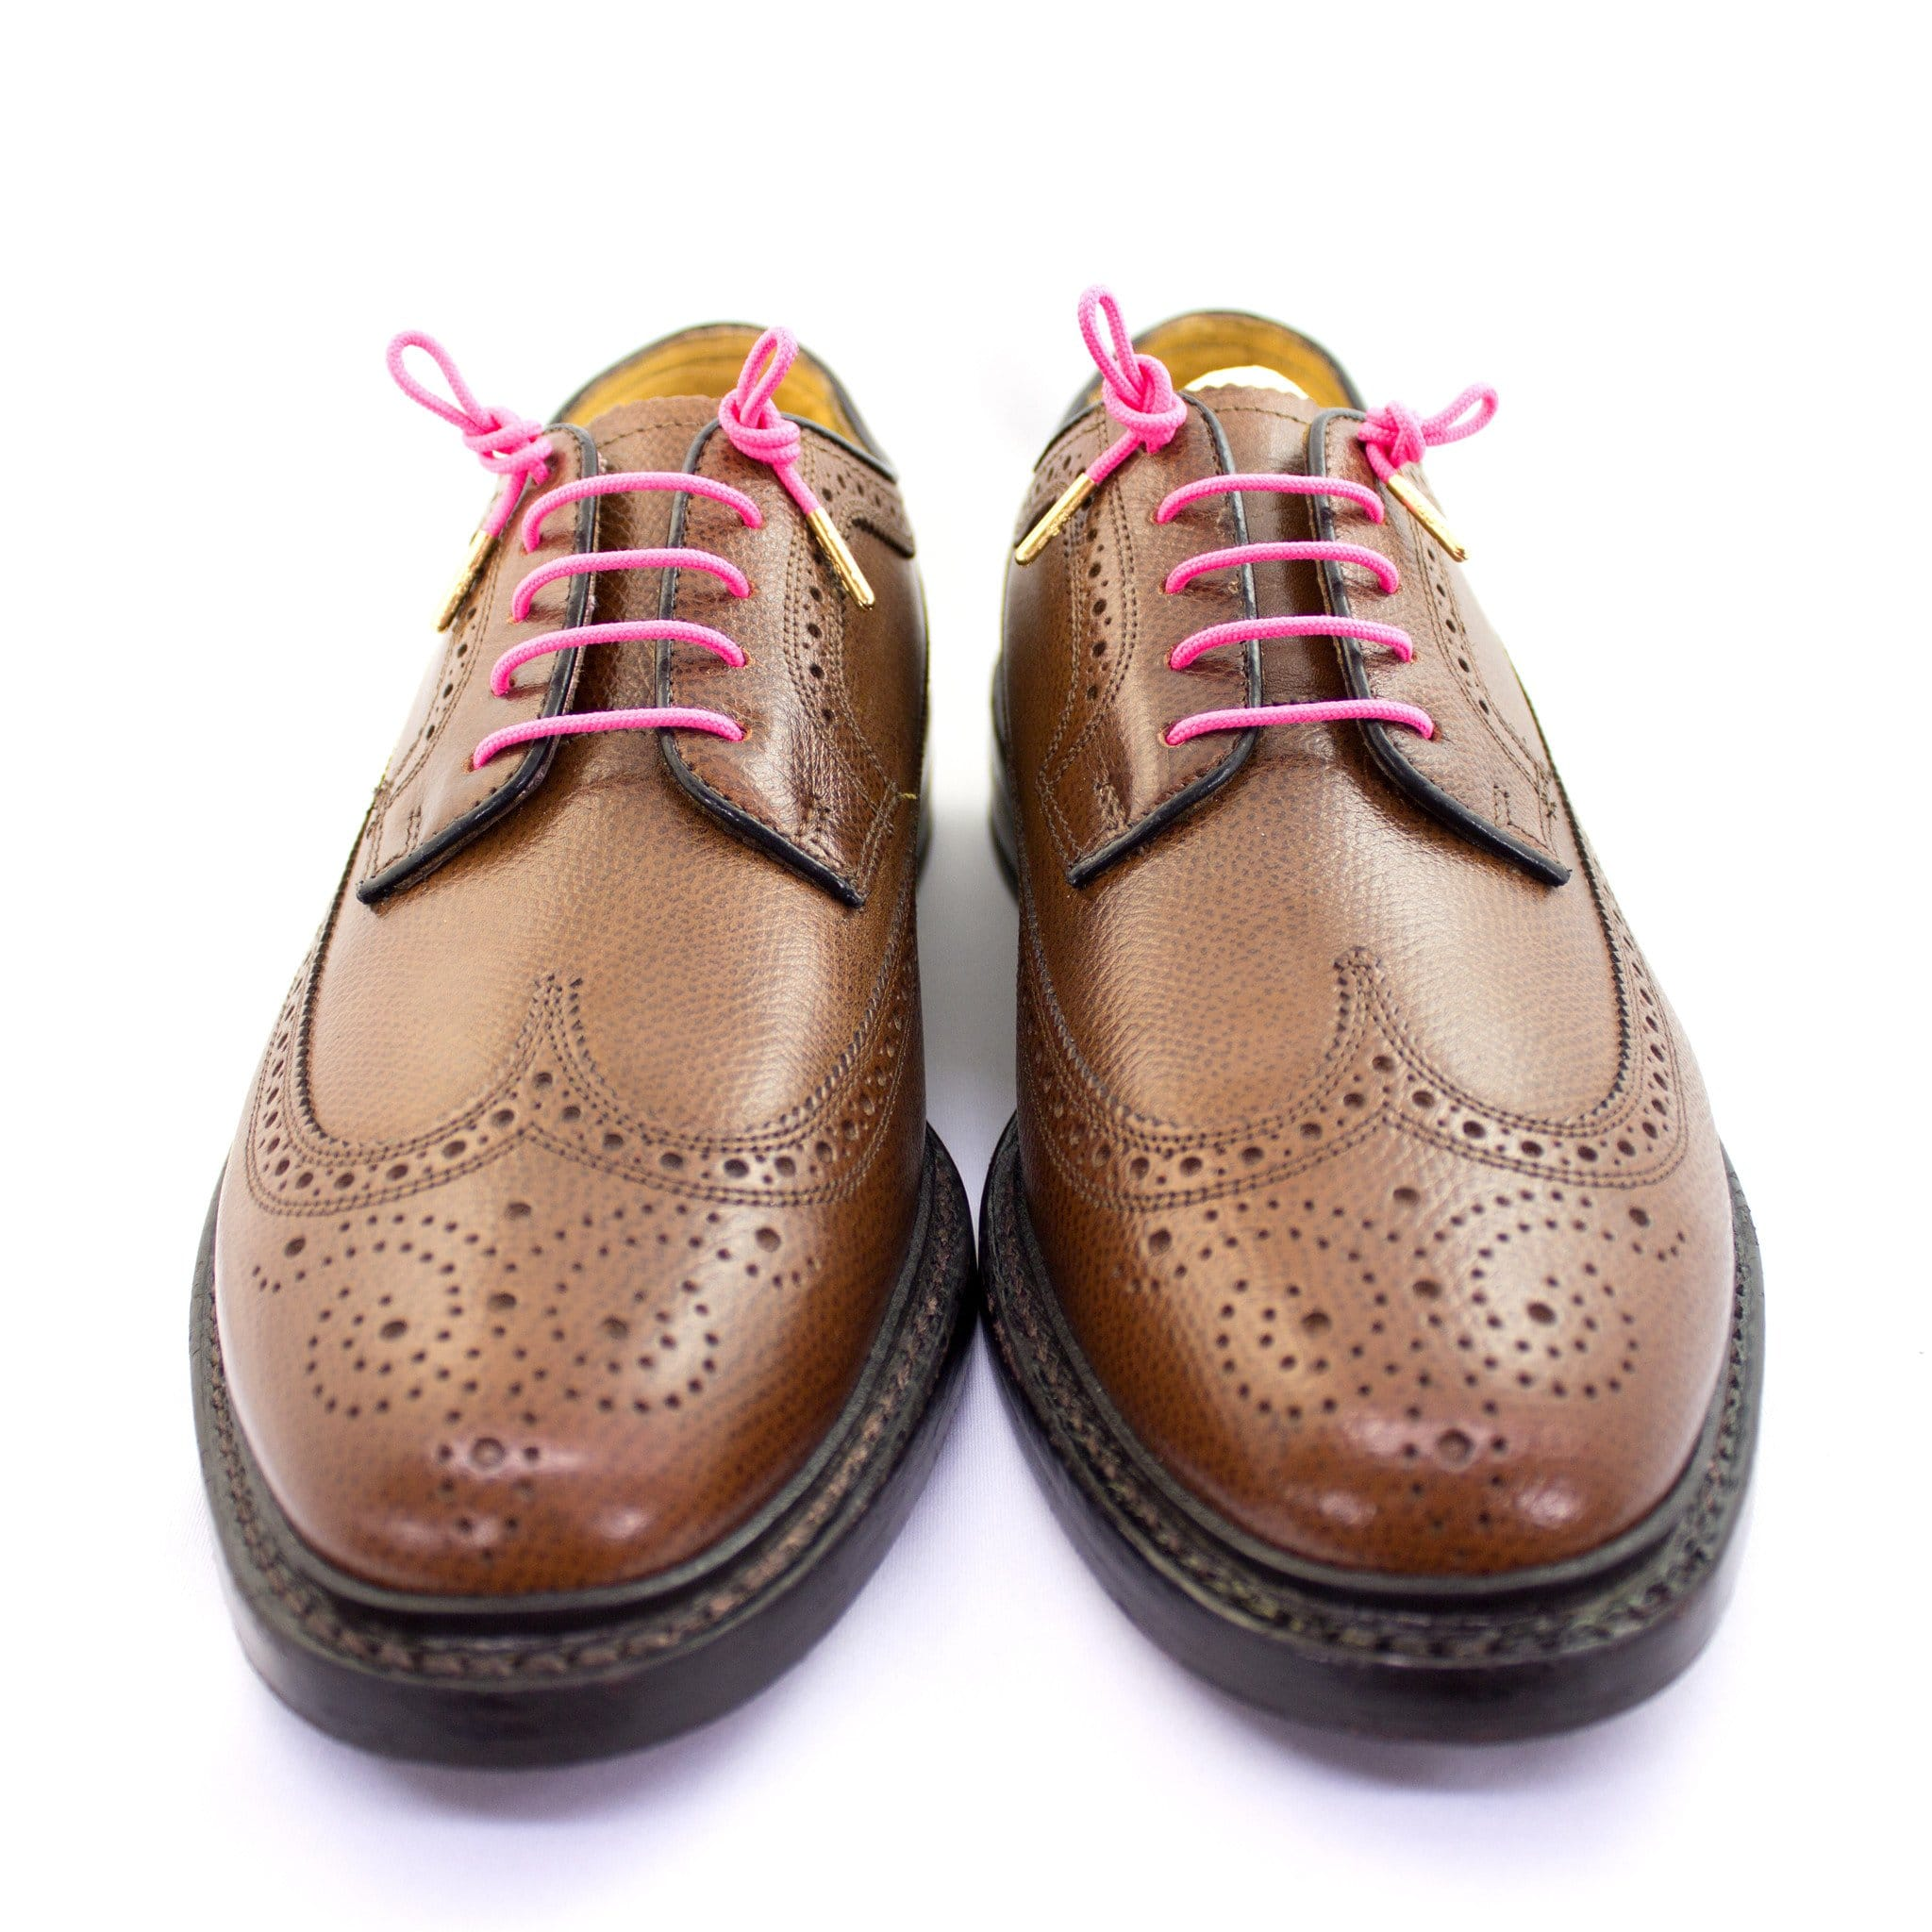 "Neon pink laces for dress shoes, Length: 27""/69cm-Stolen Riches"